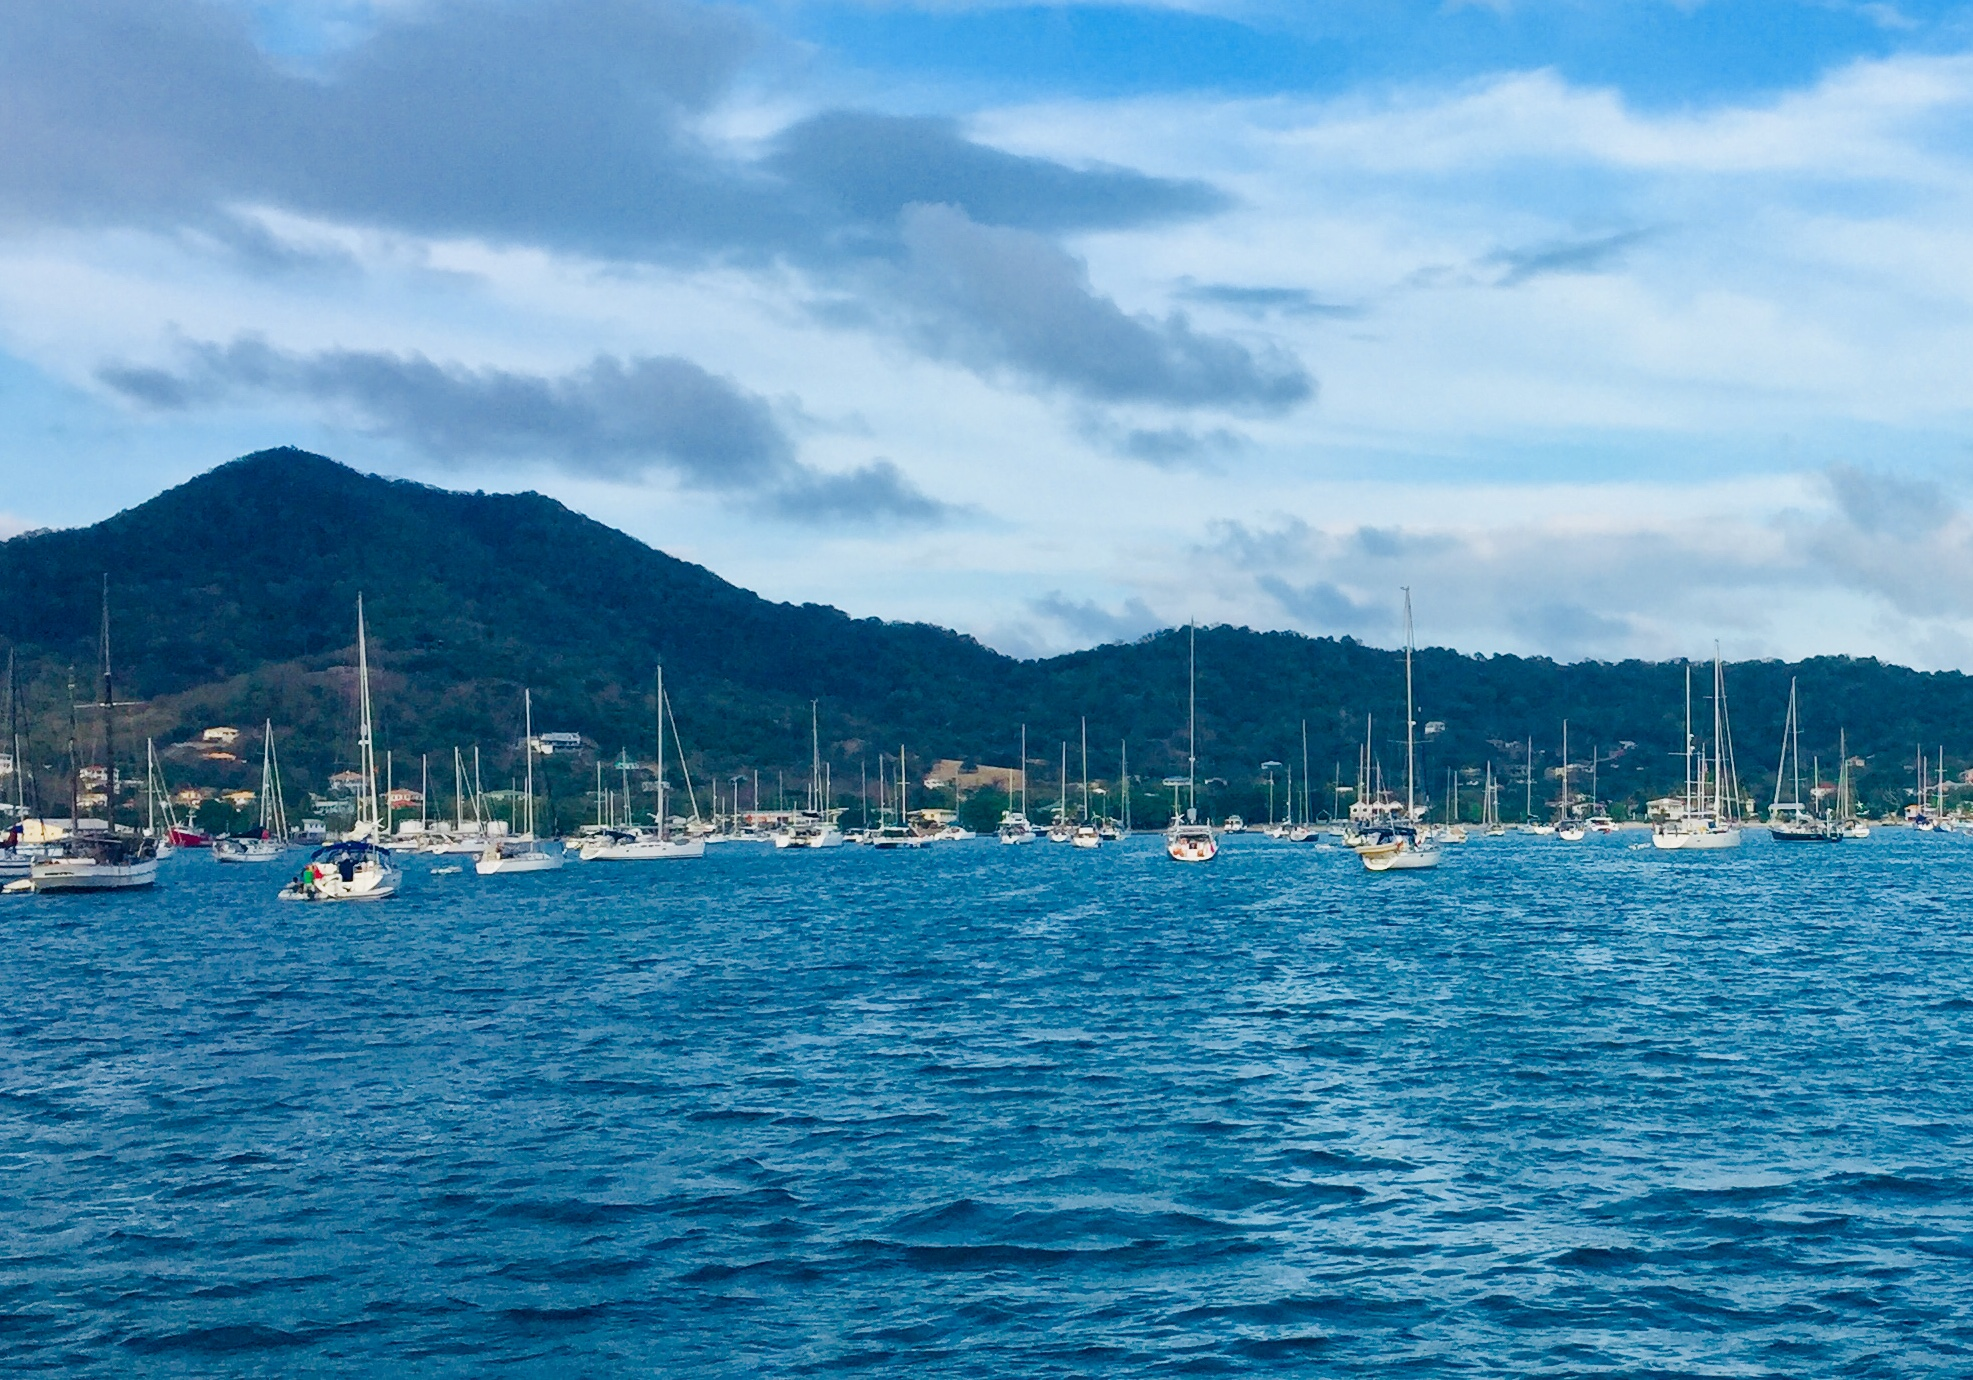 Arrival at Tyrrel Bay, Carriacou